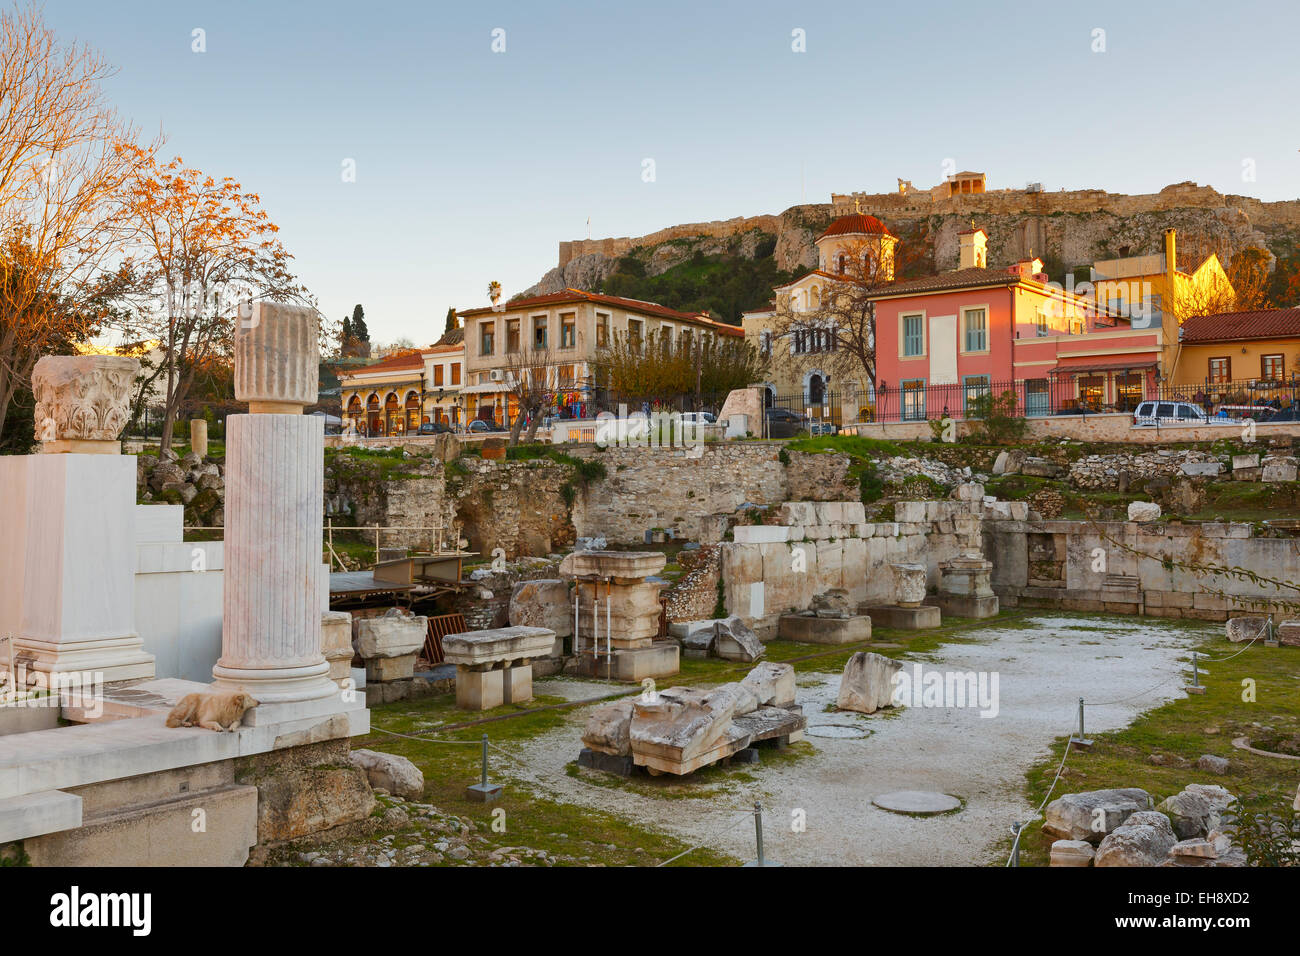 Remains of the Hadrian's Library in Monastiraki square in Athens, Greece. - Stock Image